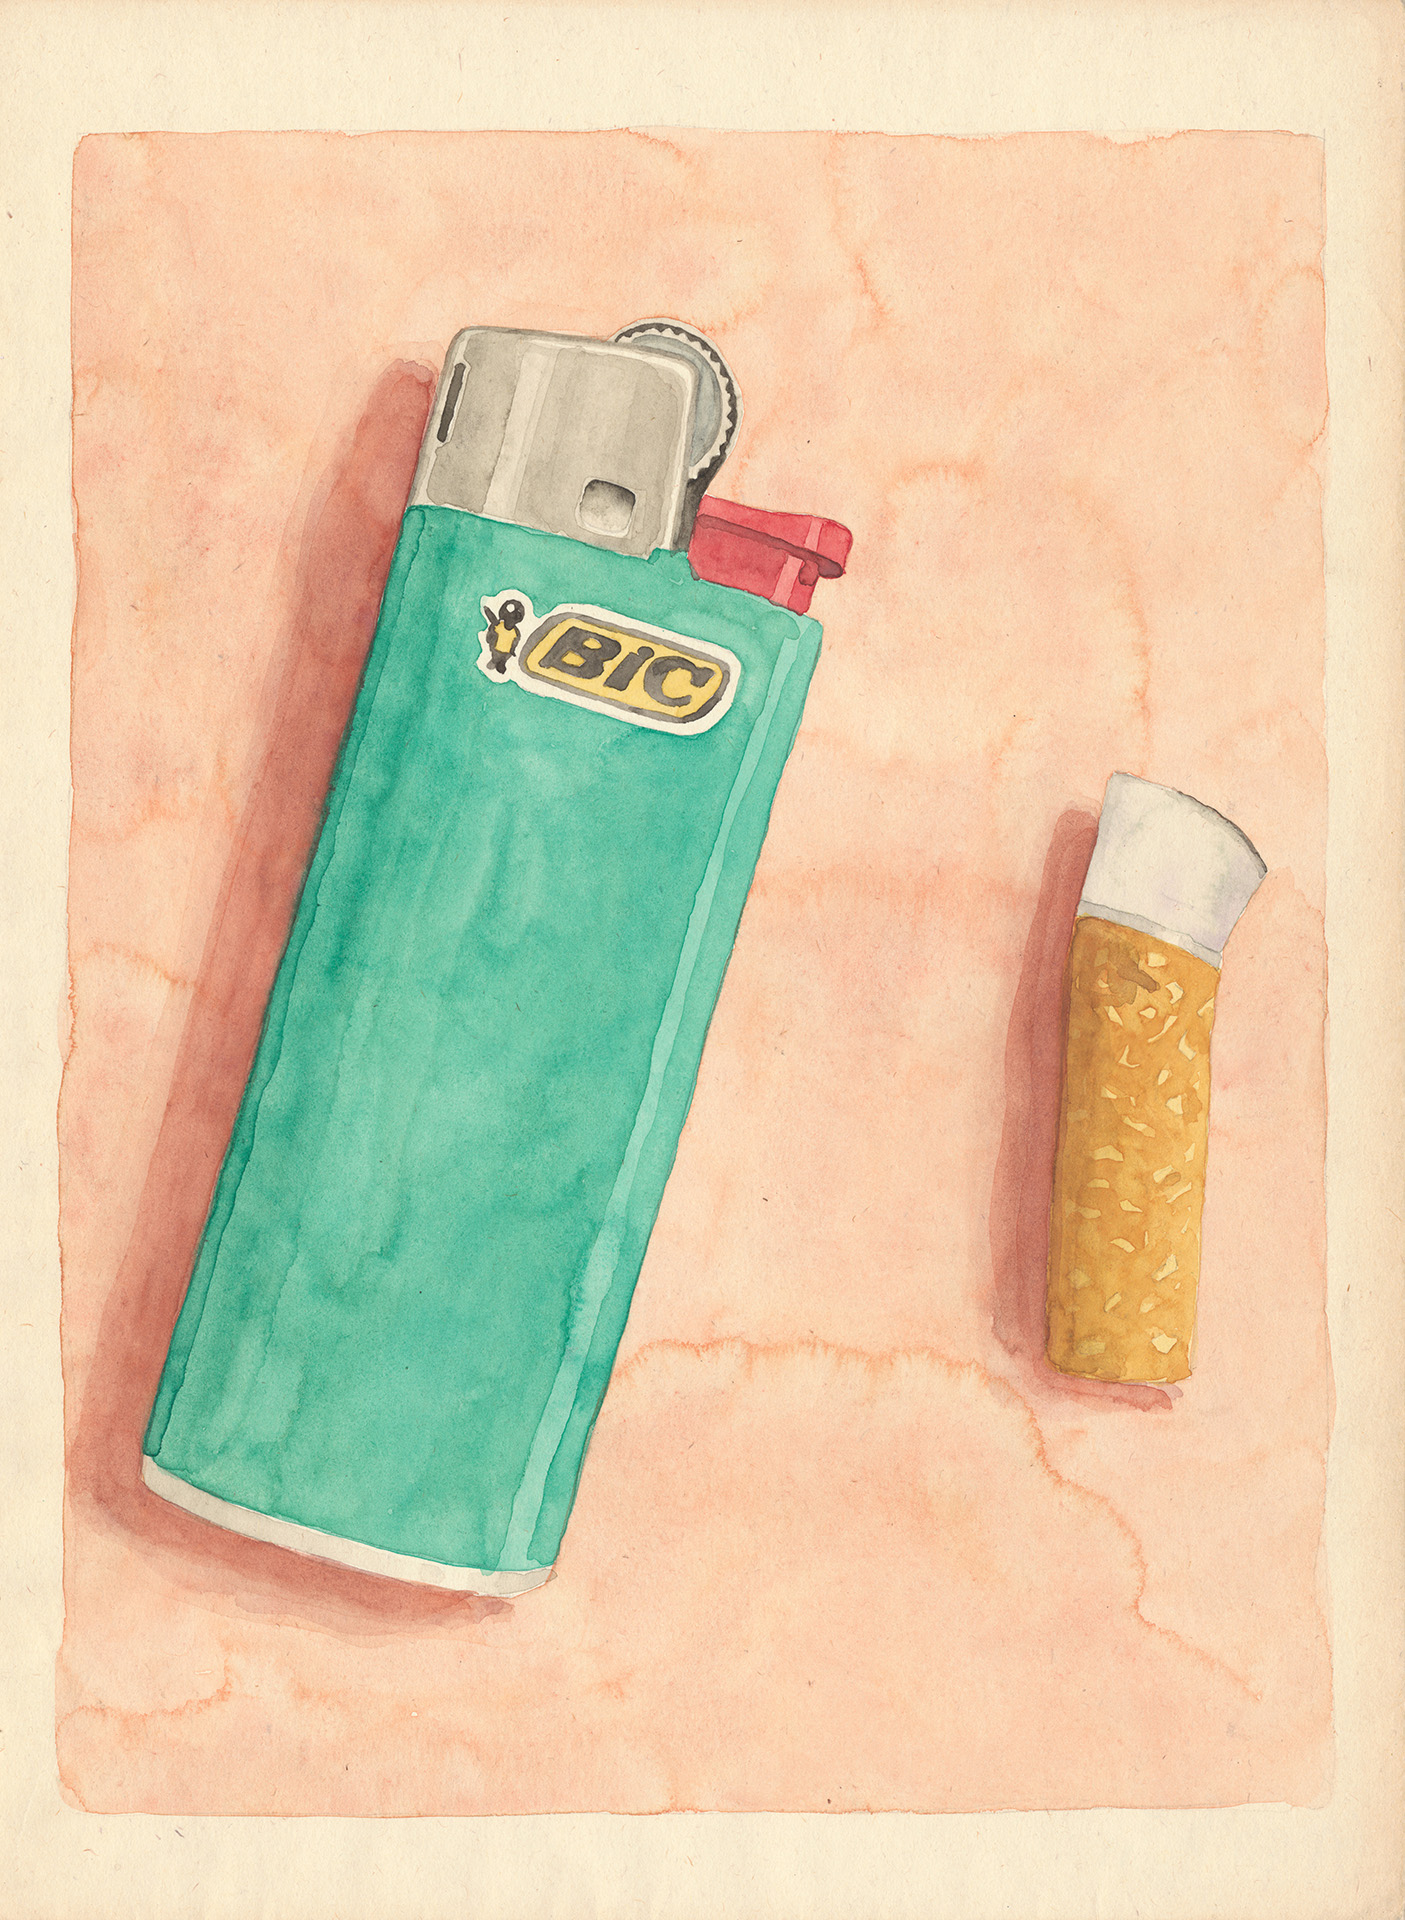 BIC LIGHTER watercolor on paper cm 33x25